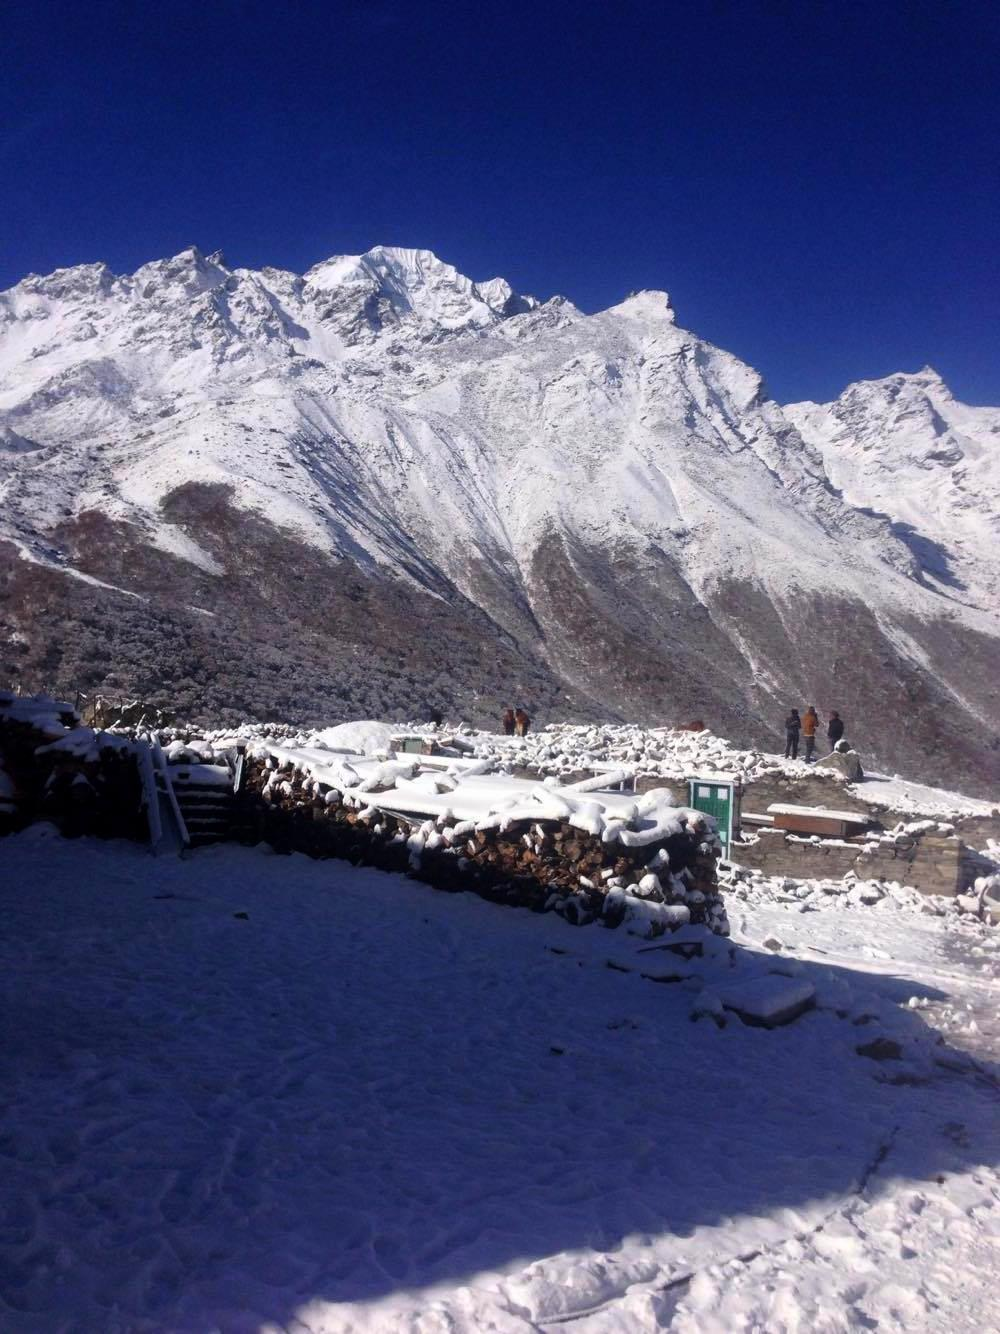 Langtang_snowy_mountains_April_2016_Adventure_Alternative_Nepal.jpg